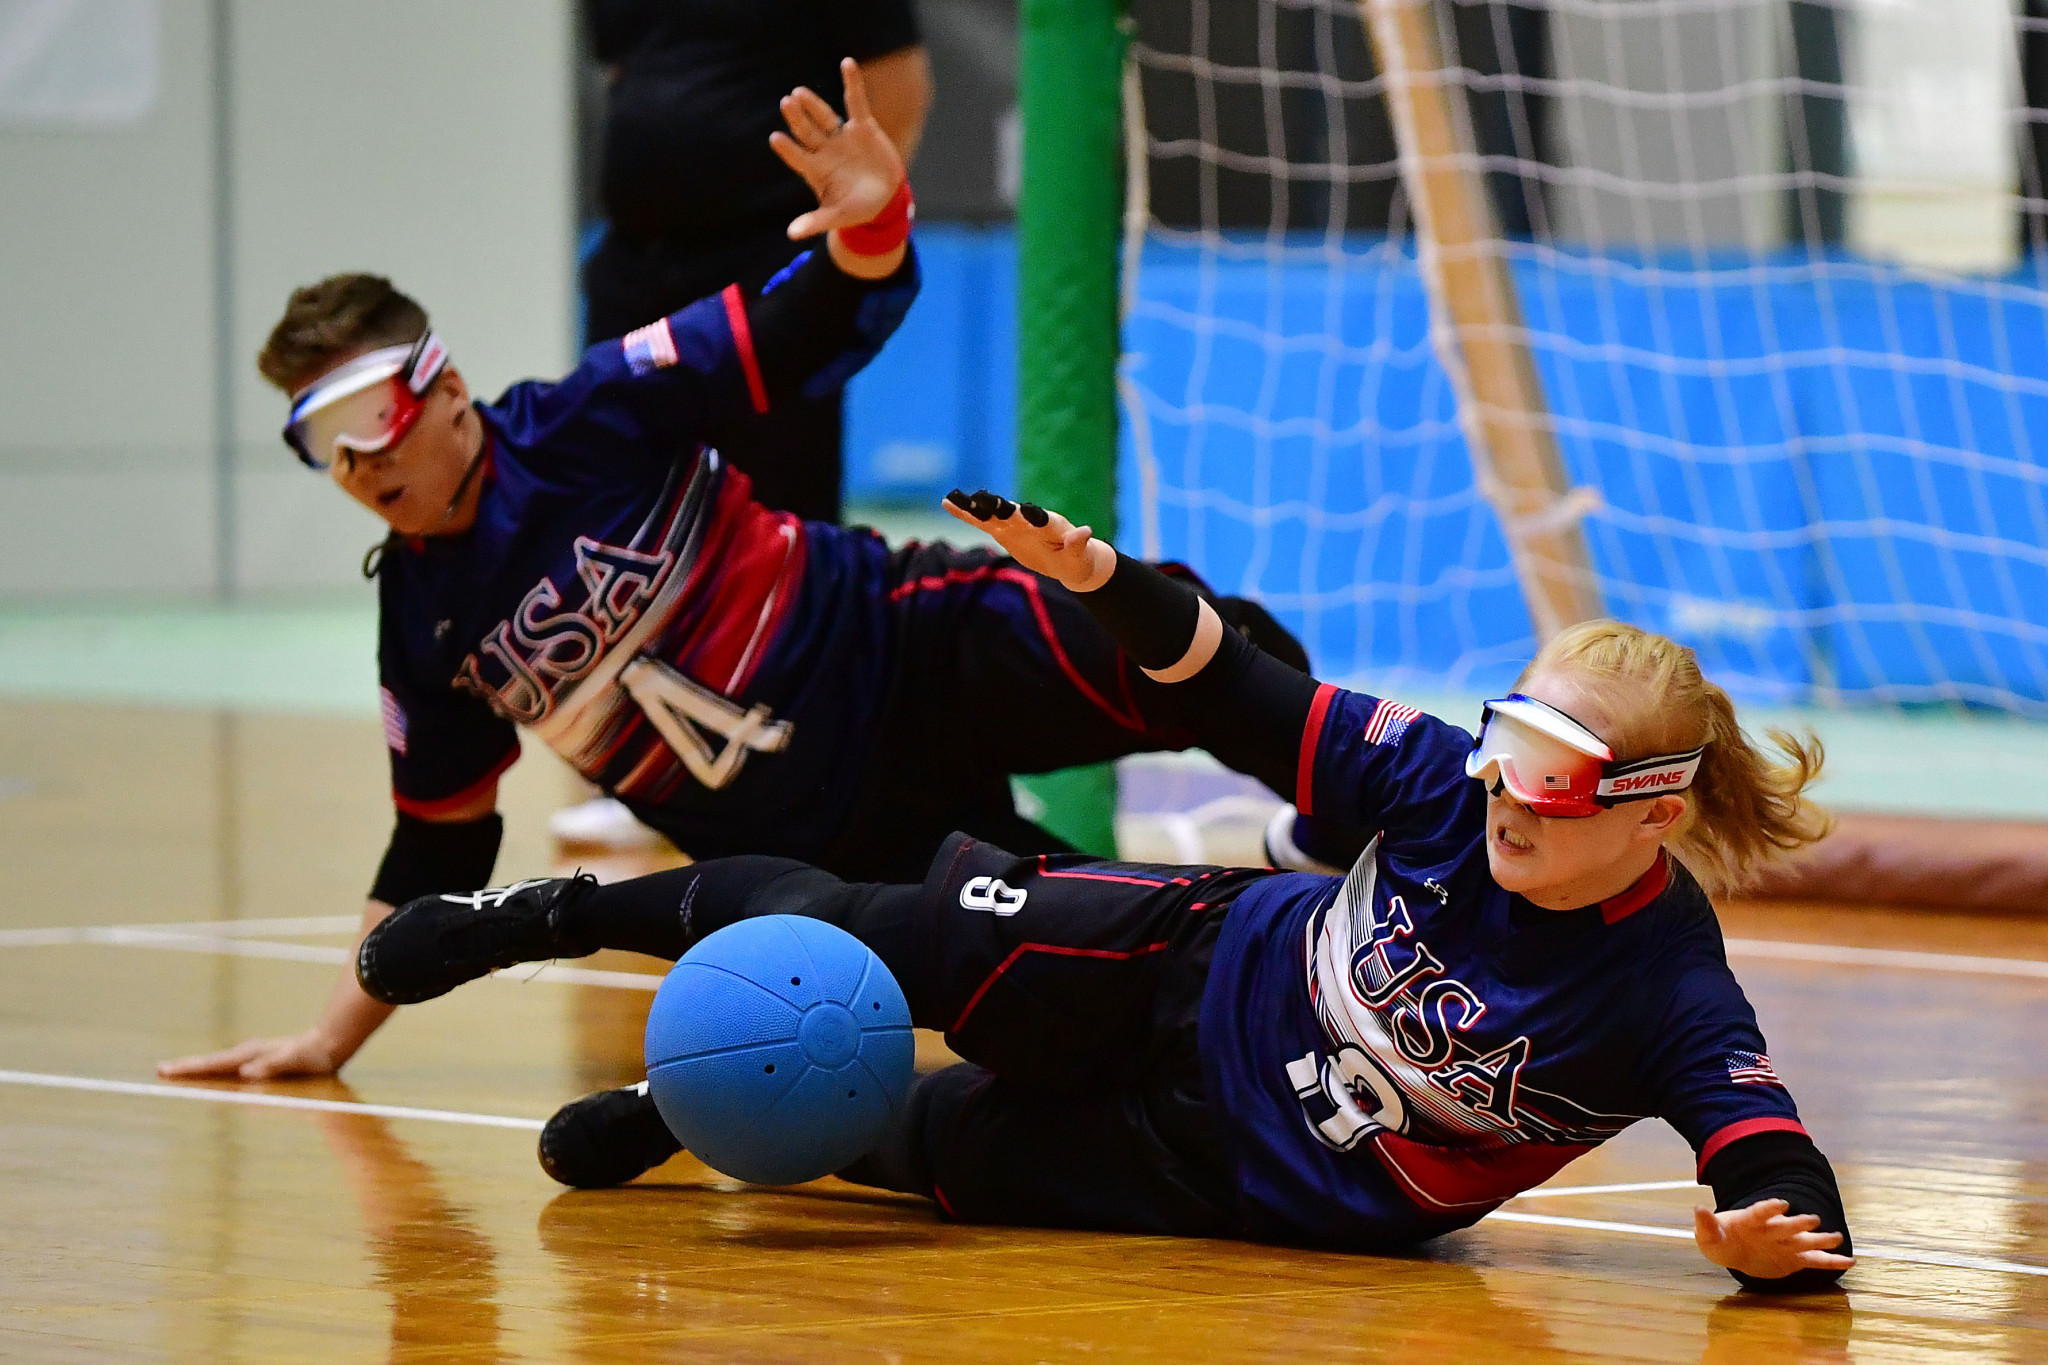 IBSA releases COVID-19 guidelines for safe return of goalball